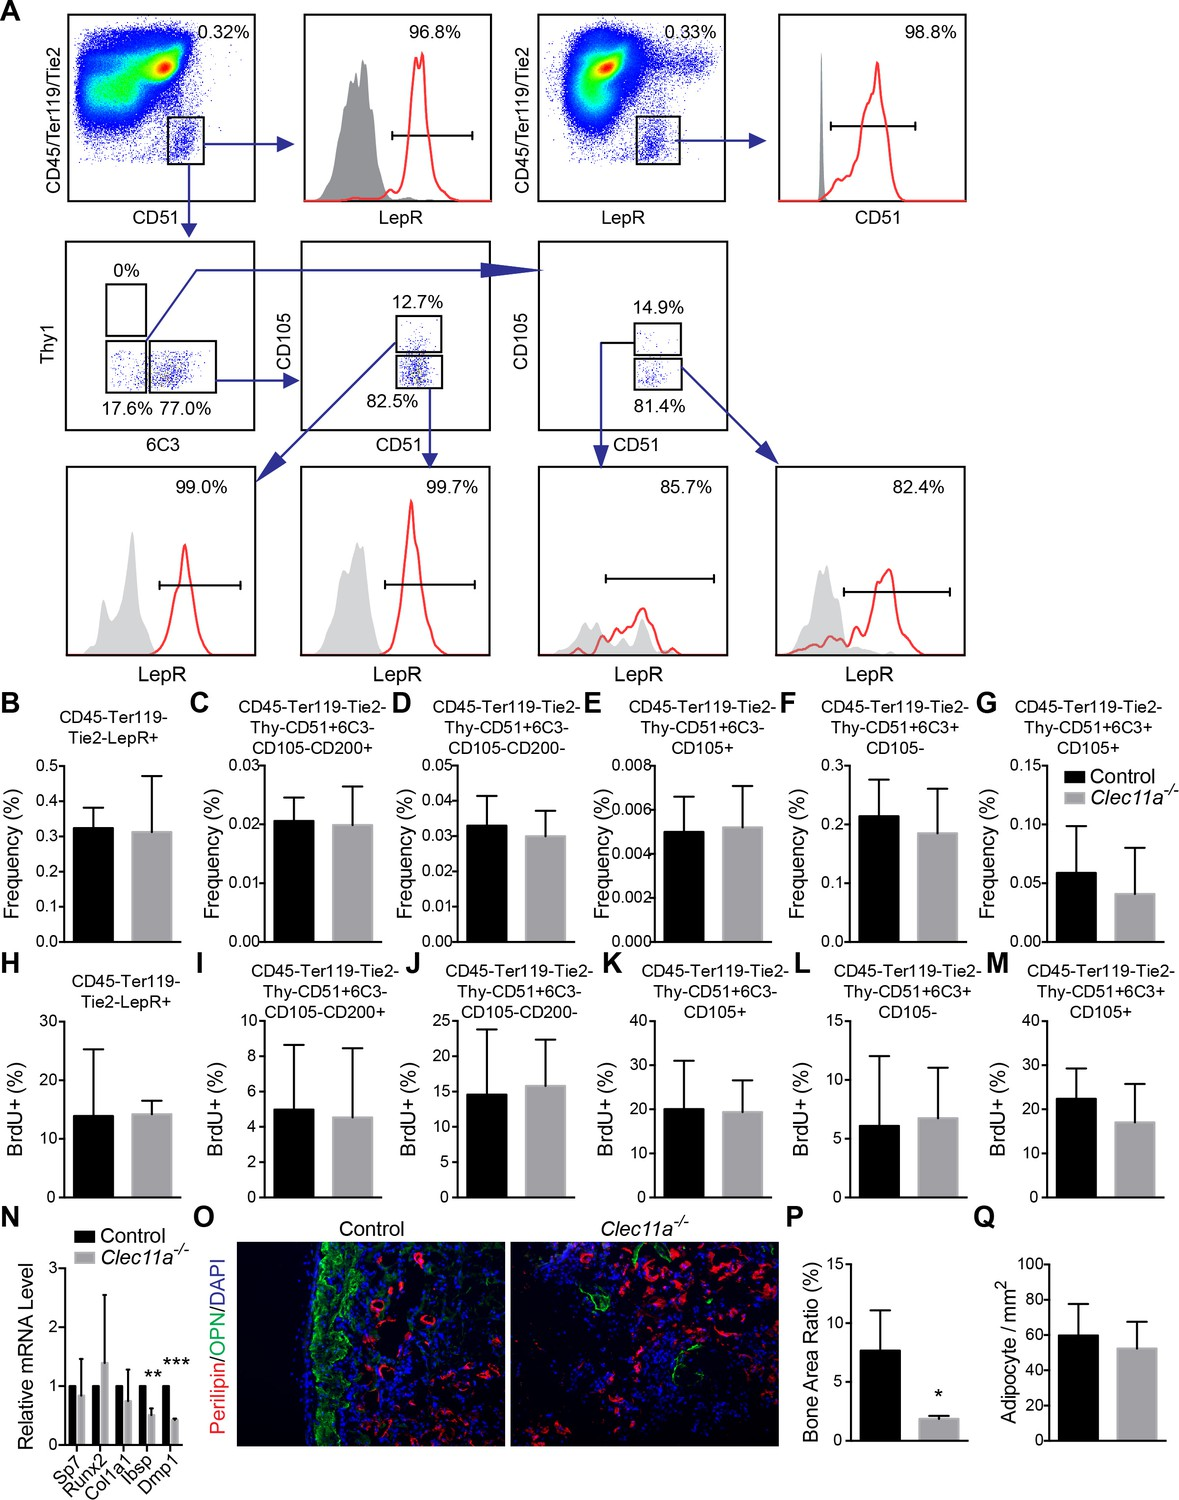 Clec11a Osteolectin Is An Osteogenic Growth Factor That Promotes The Mclaren Mt 7 Wire Diagram Analysis Of Osteoprogenitor Populations And In Vivo Transplantation Bone Marrow Stromal Cells